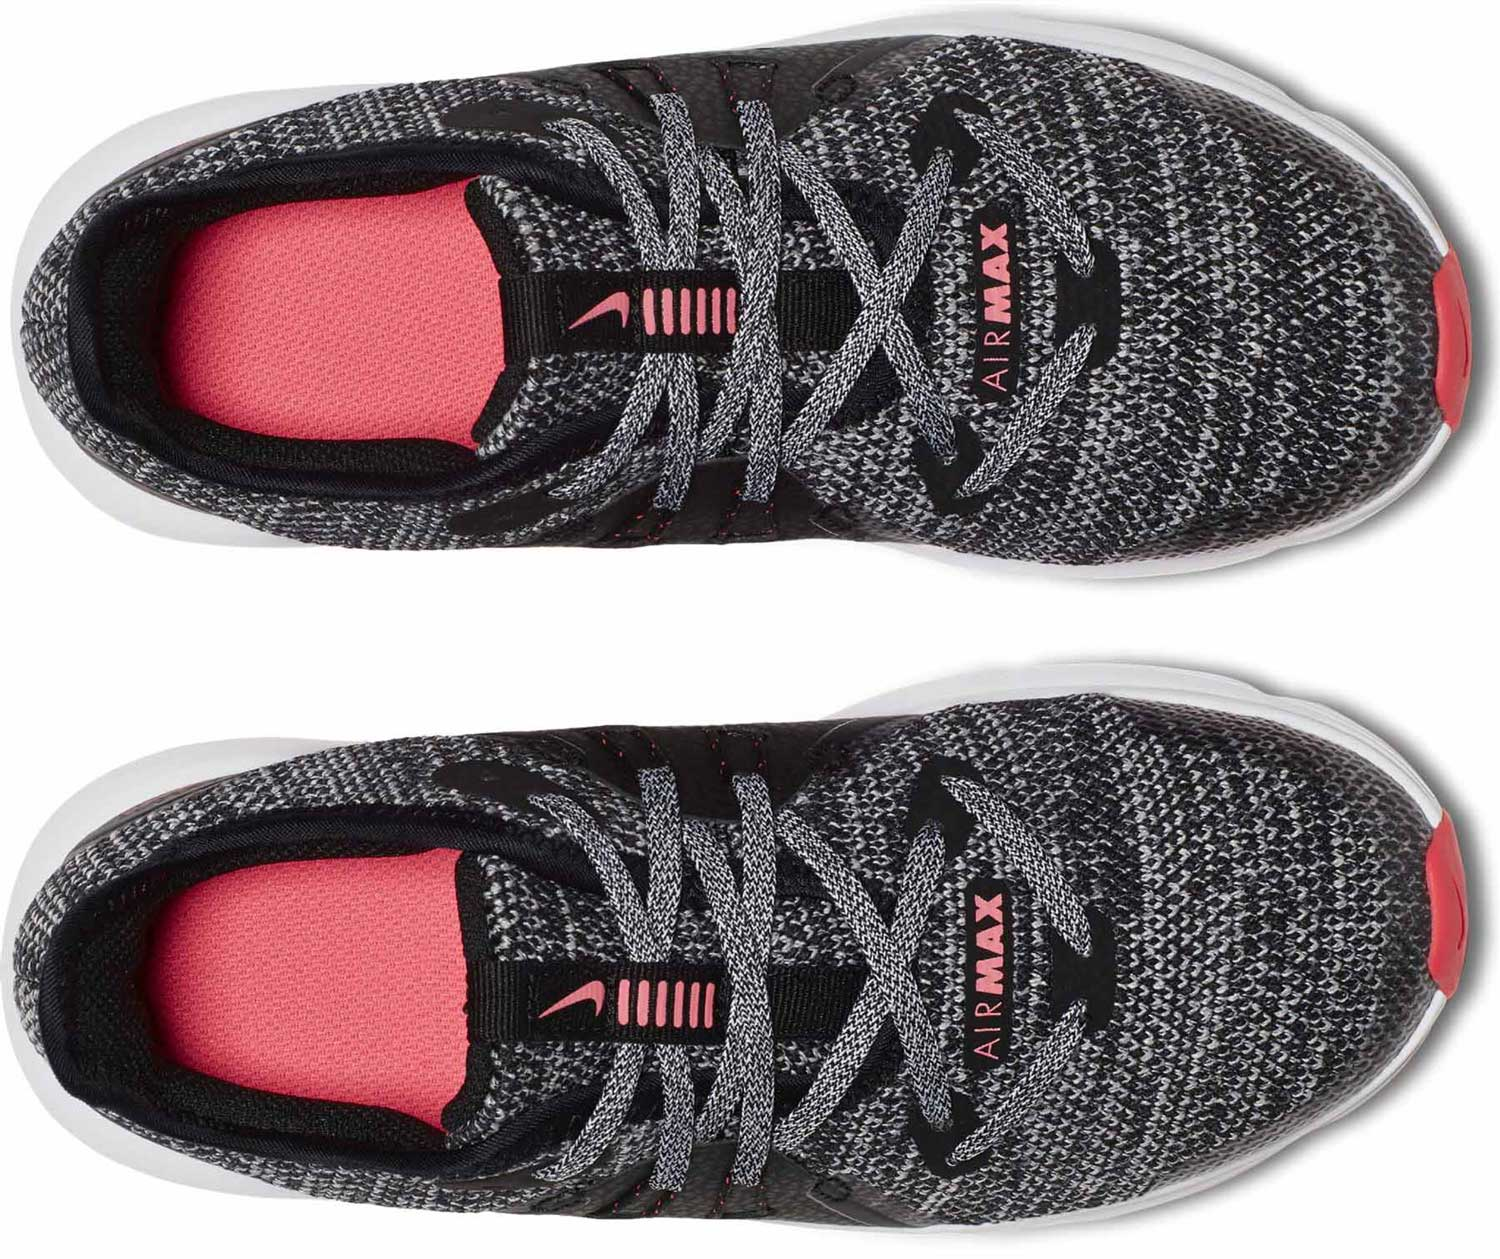 bd5519778dc Nike AIR MAX SEQUENT 3 (PS). Girls  shoes. Girls  shoes. Girls  shoes